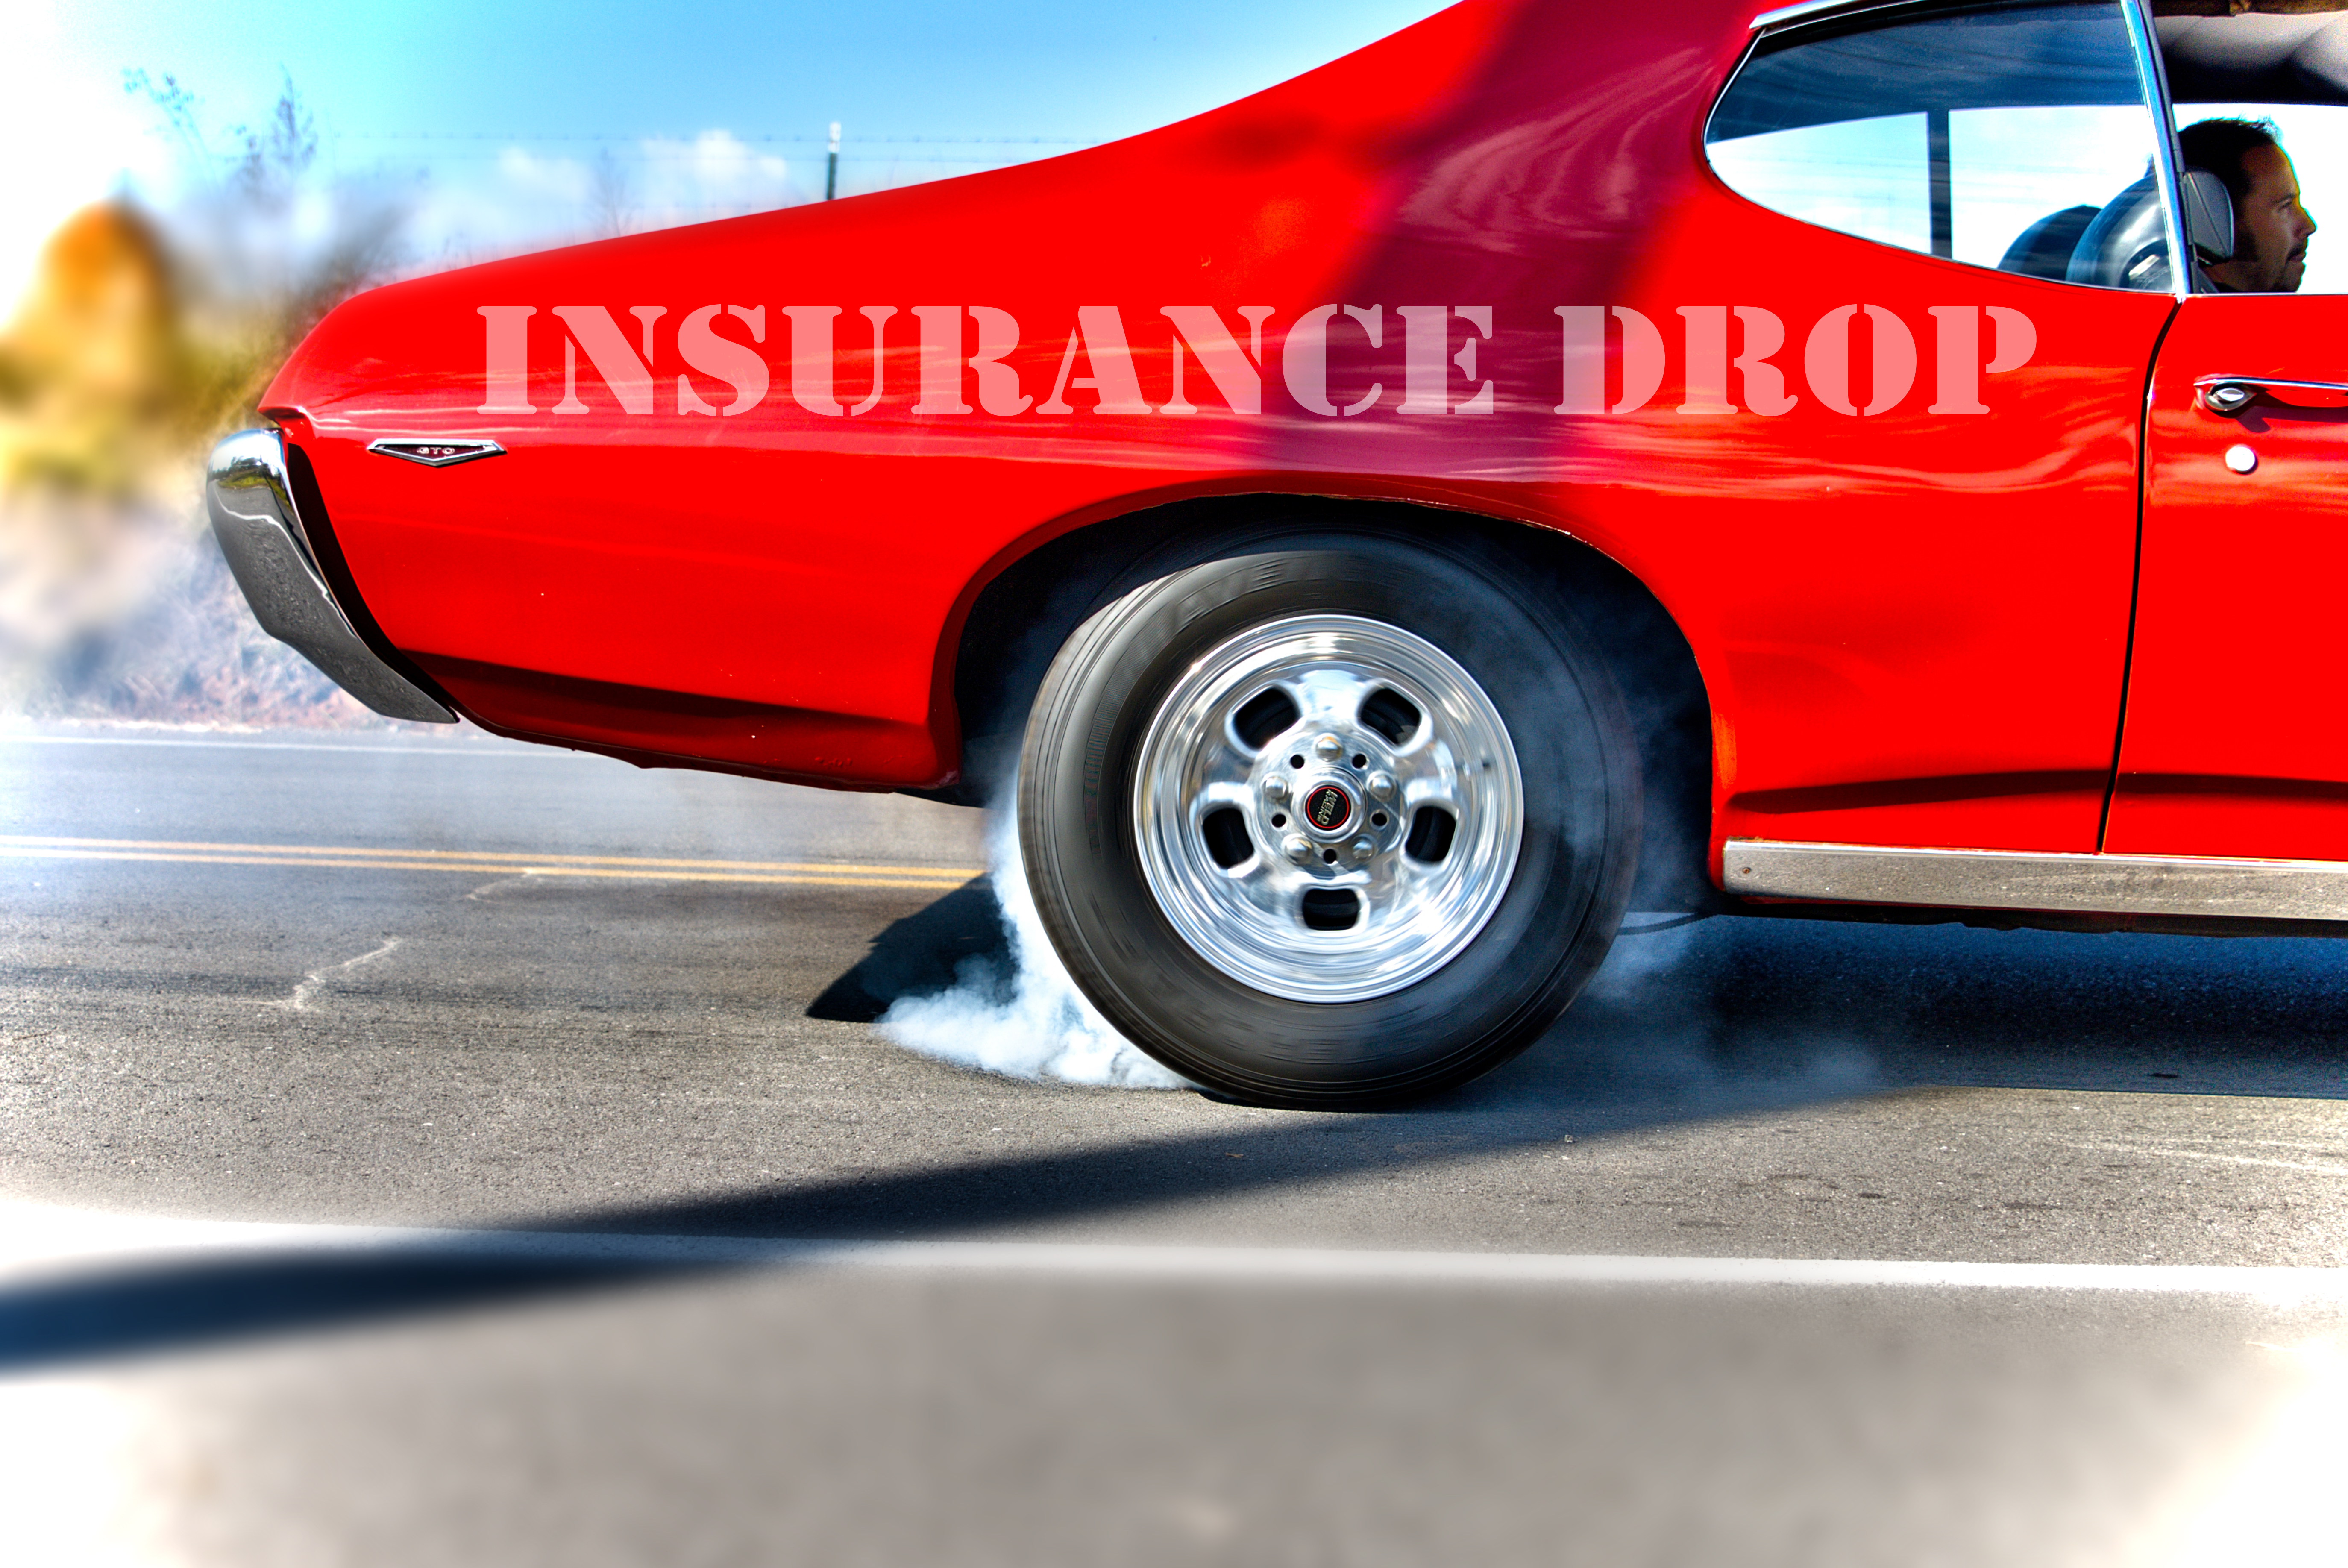 The overall personal auto rate will drop by 2.8 percent. Statewide, customers of the state's largest insurer will realize total savings of approximately 24.6 million dollars.